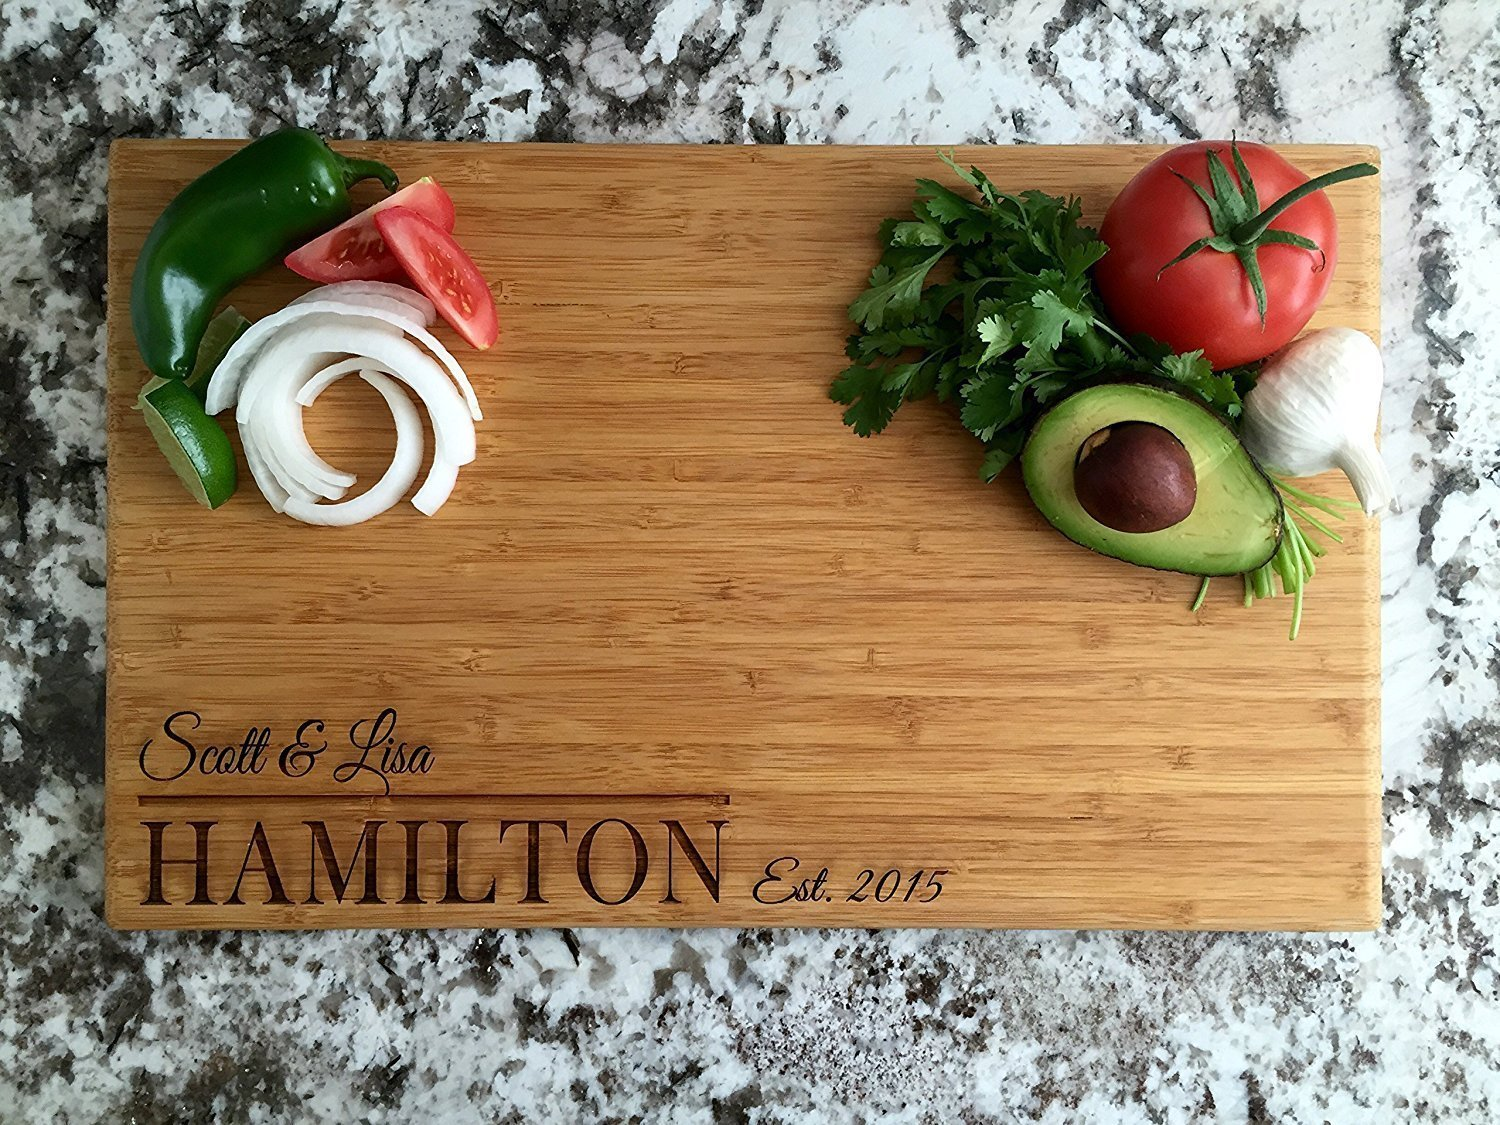 Personalized by Name Cutting Board for Kitchen - Wood Cutting Boards Housewarming Presents (11 x 17 Single Tone Bamboo Rectangular, Hamilton Design)